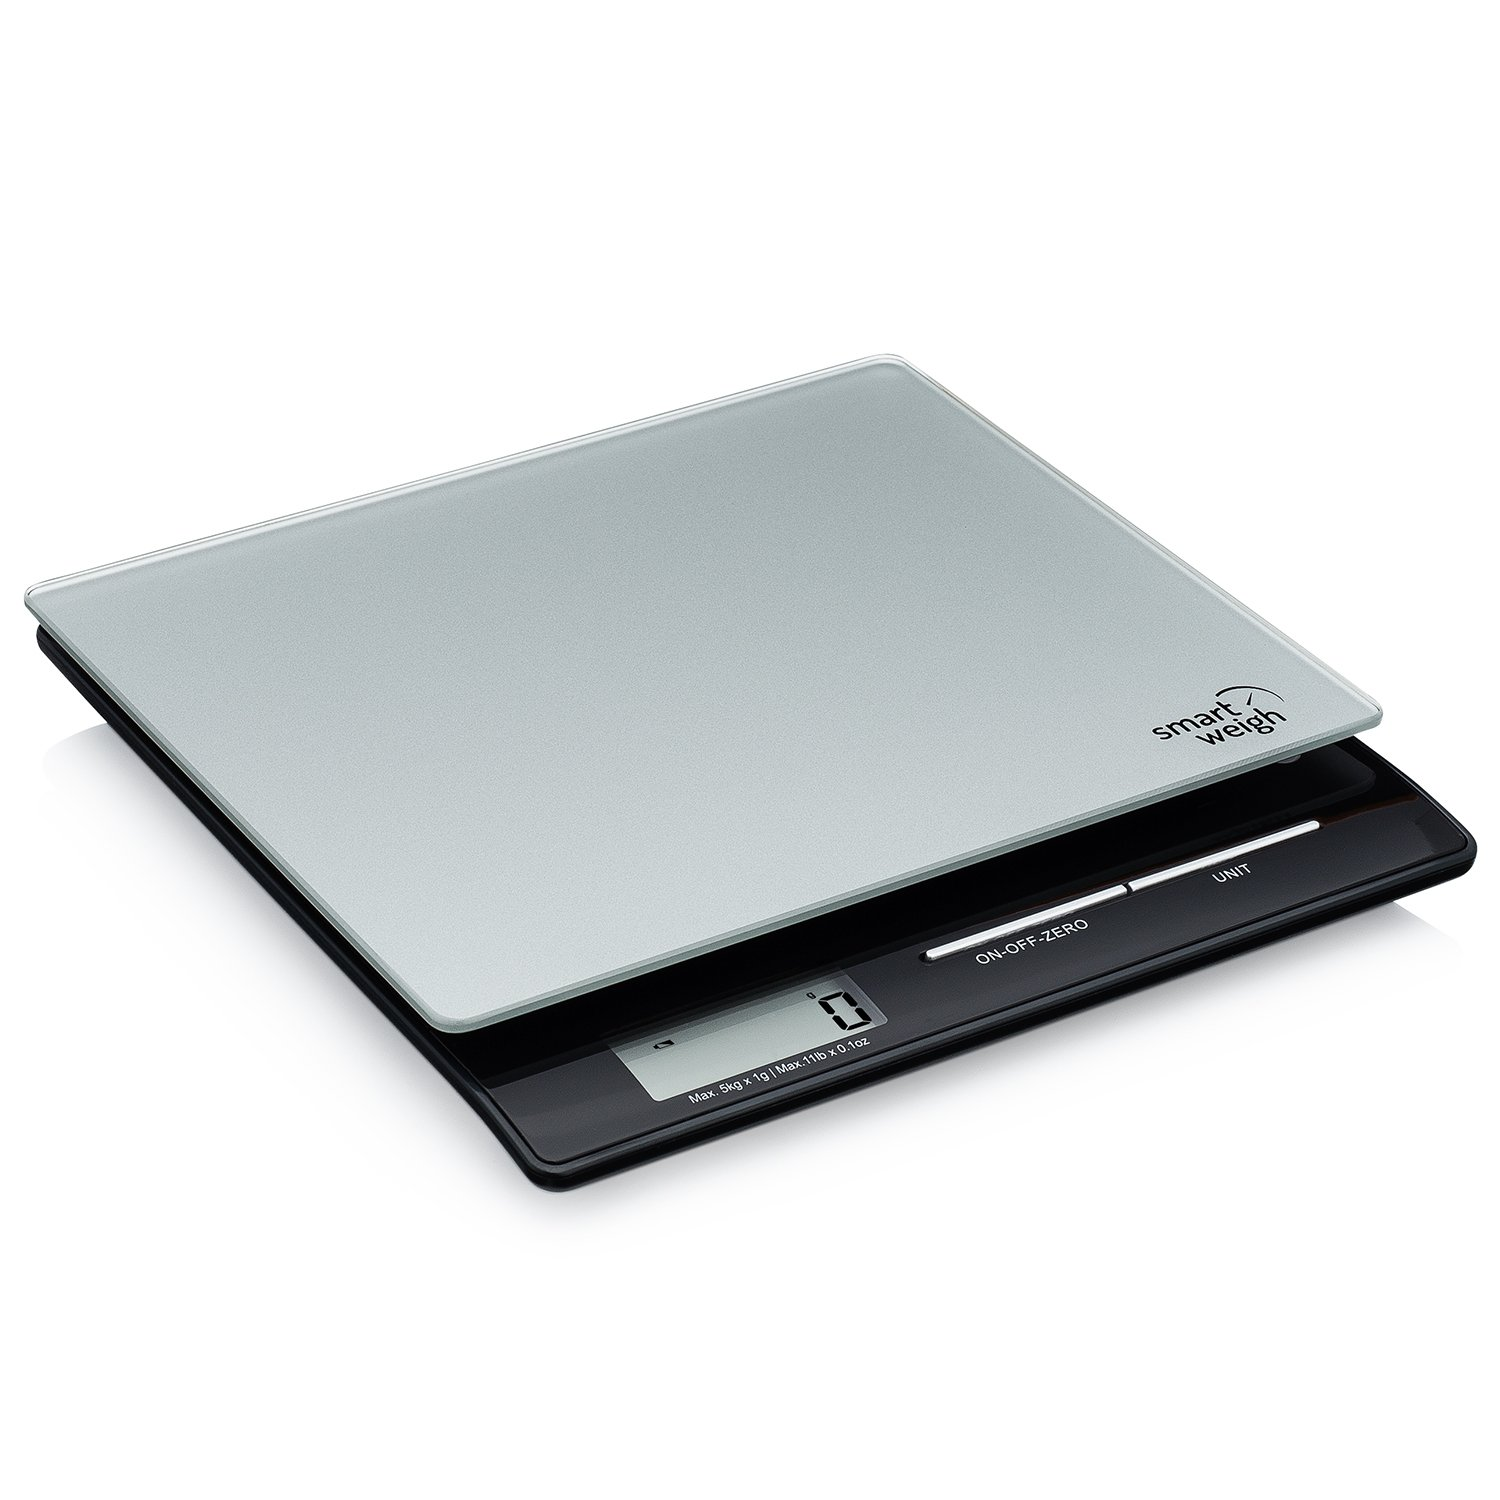 Smart Weigh Professional USPS Postal Scale with Tempered Glass Platform, Multiple Weighing Modes and Tare Function, Silver Shipping Scale, Platform Scale, 11lb/5kg